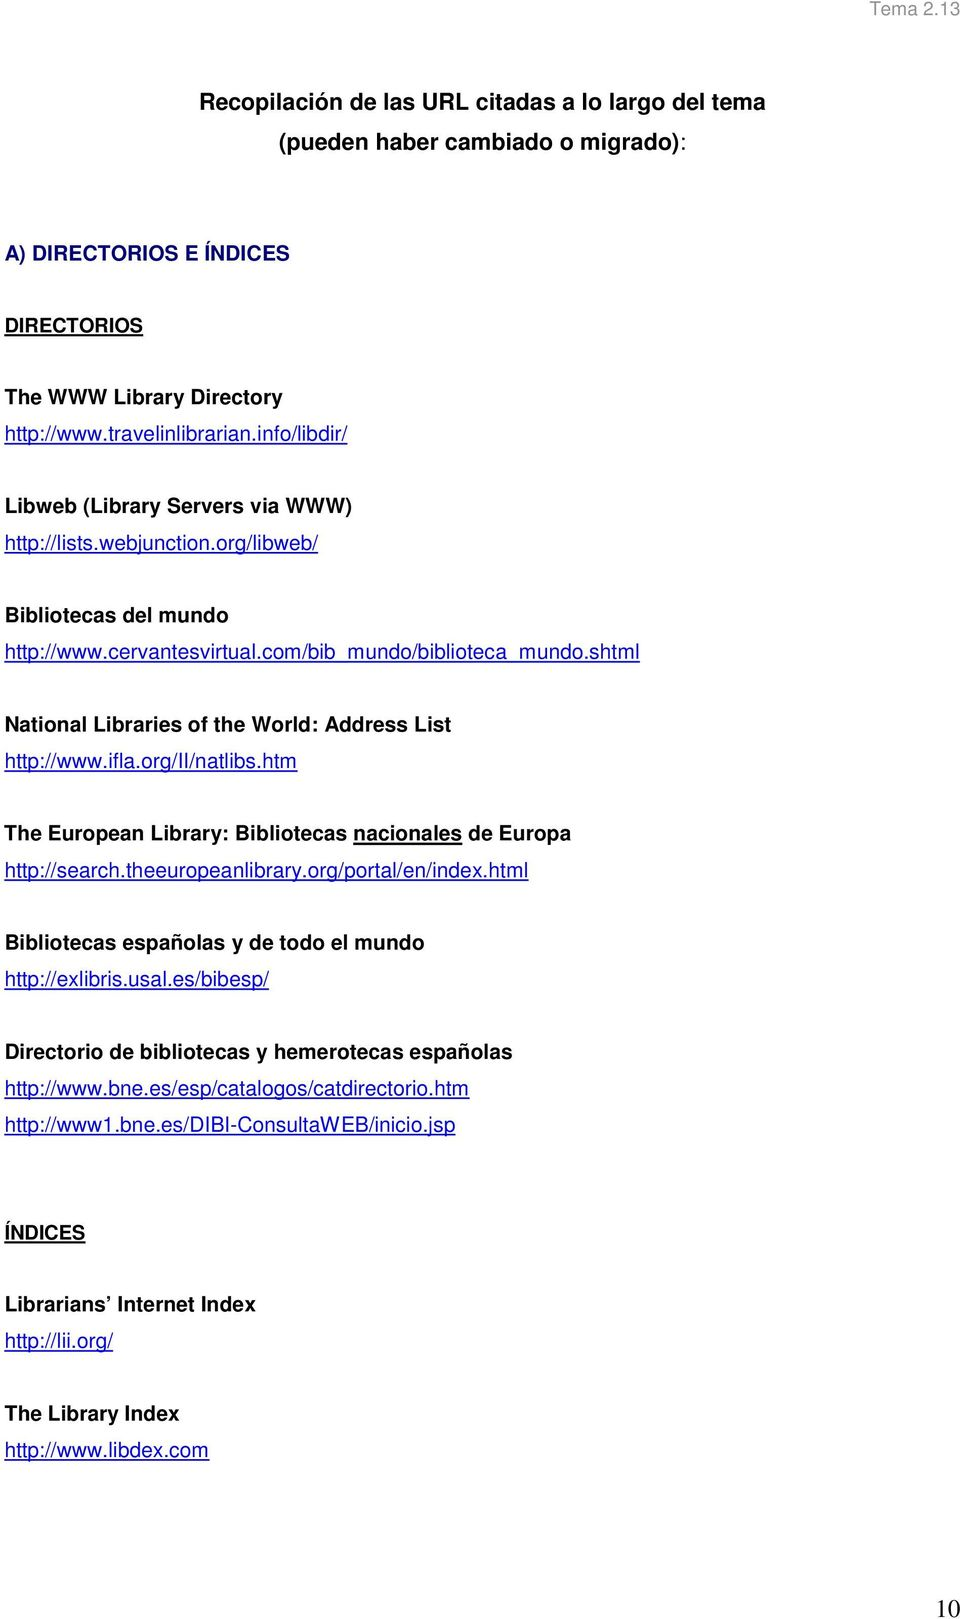 shtml National Libraries of the World: Address List http://www.ifla.org/ii/natlibs.htm The European Library: Bibliotecas nacionales de Europa http://search.theeuropeanlibrary.org/portal/en/index.